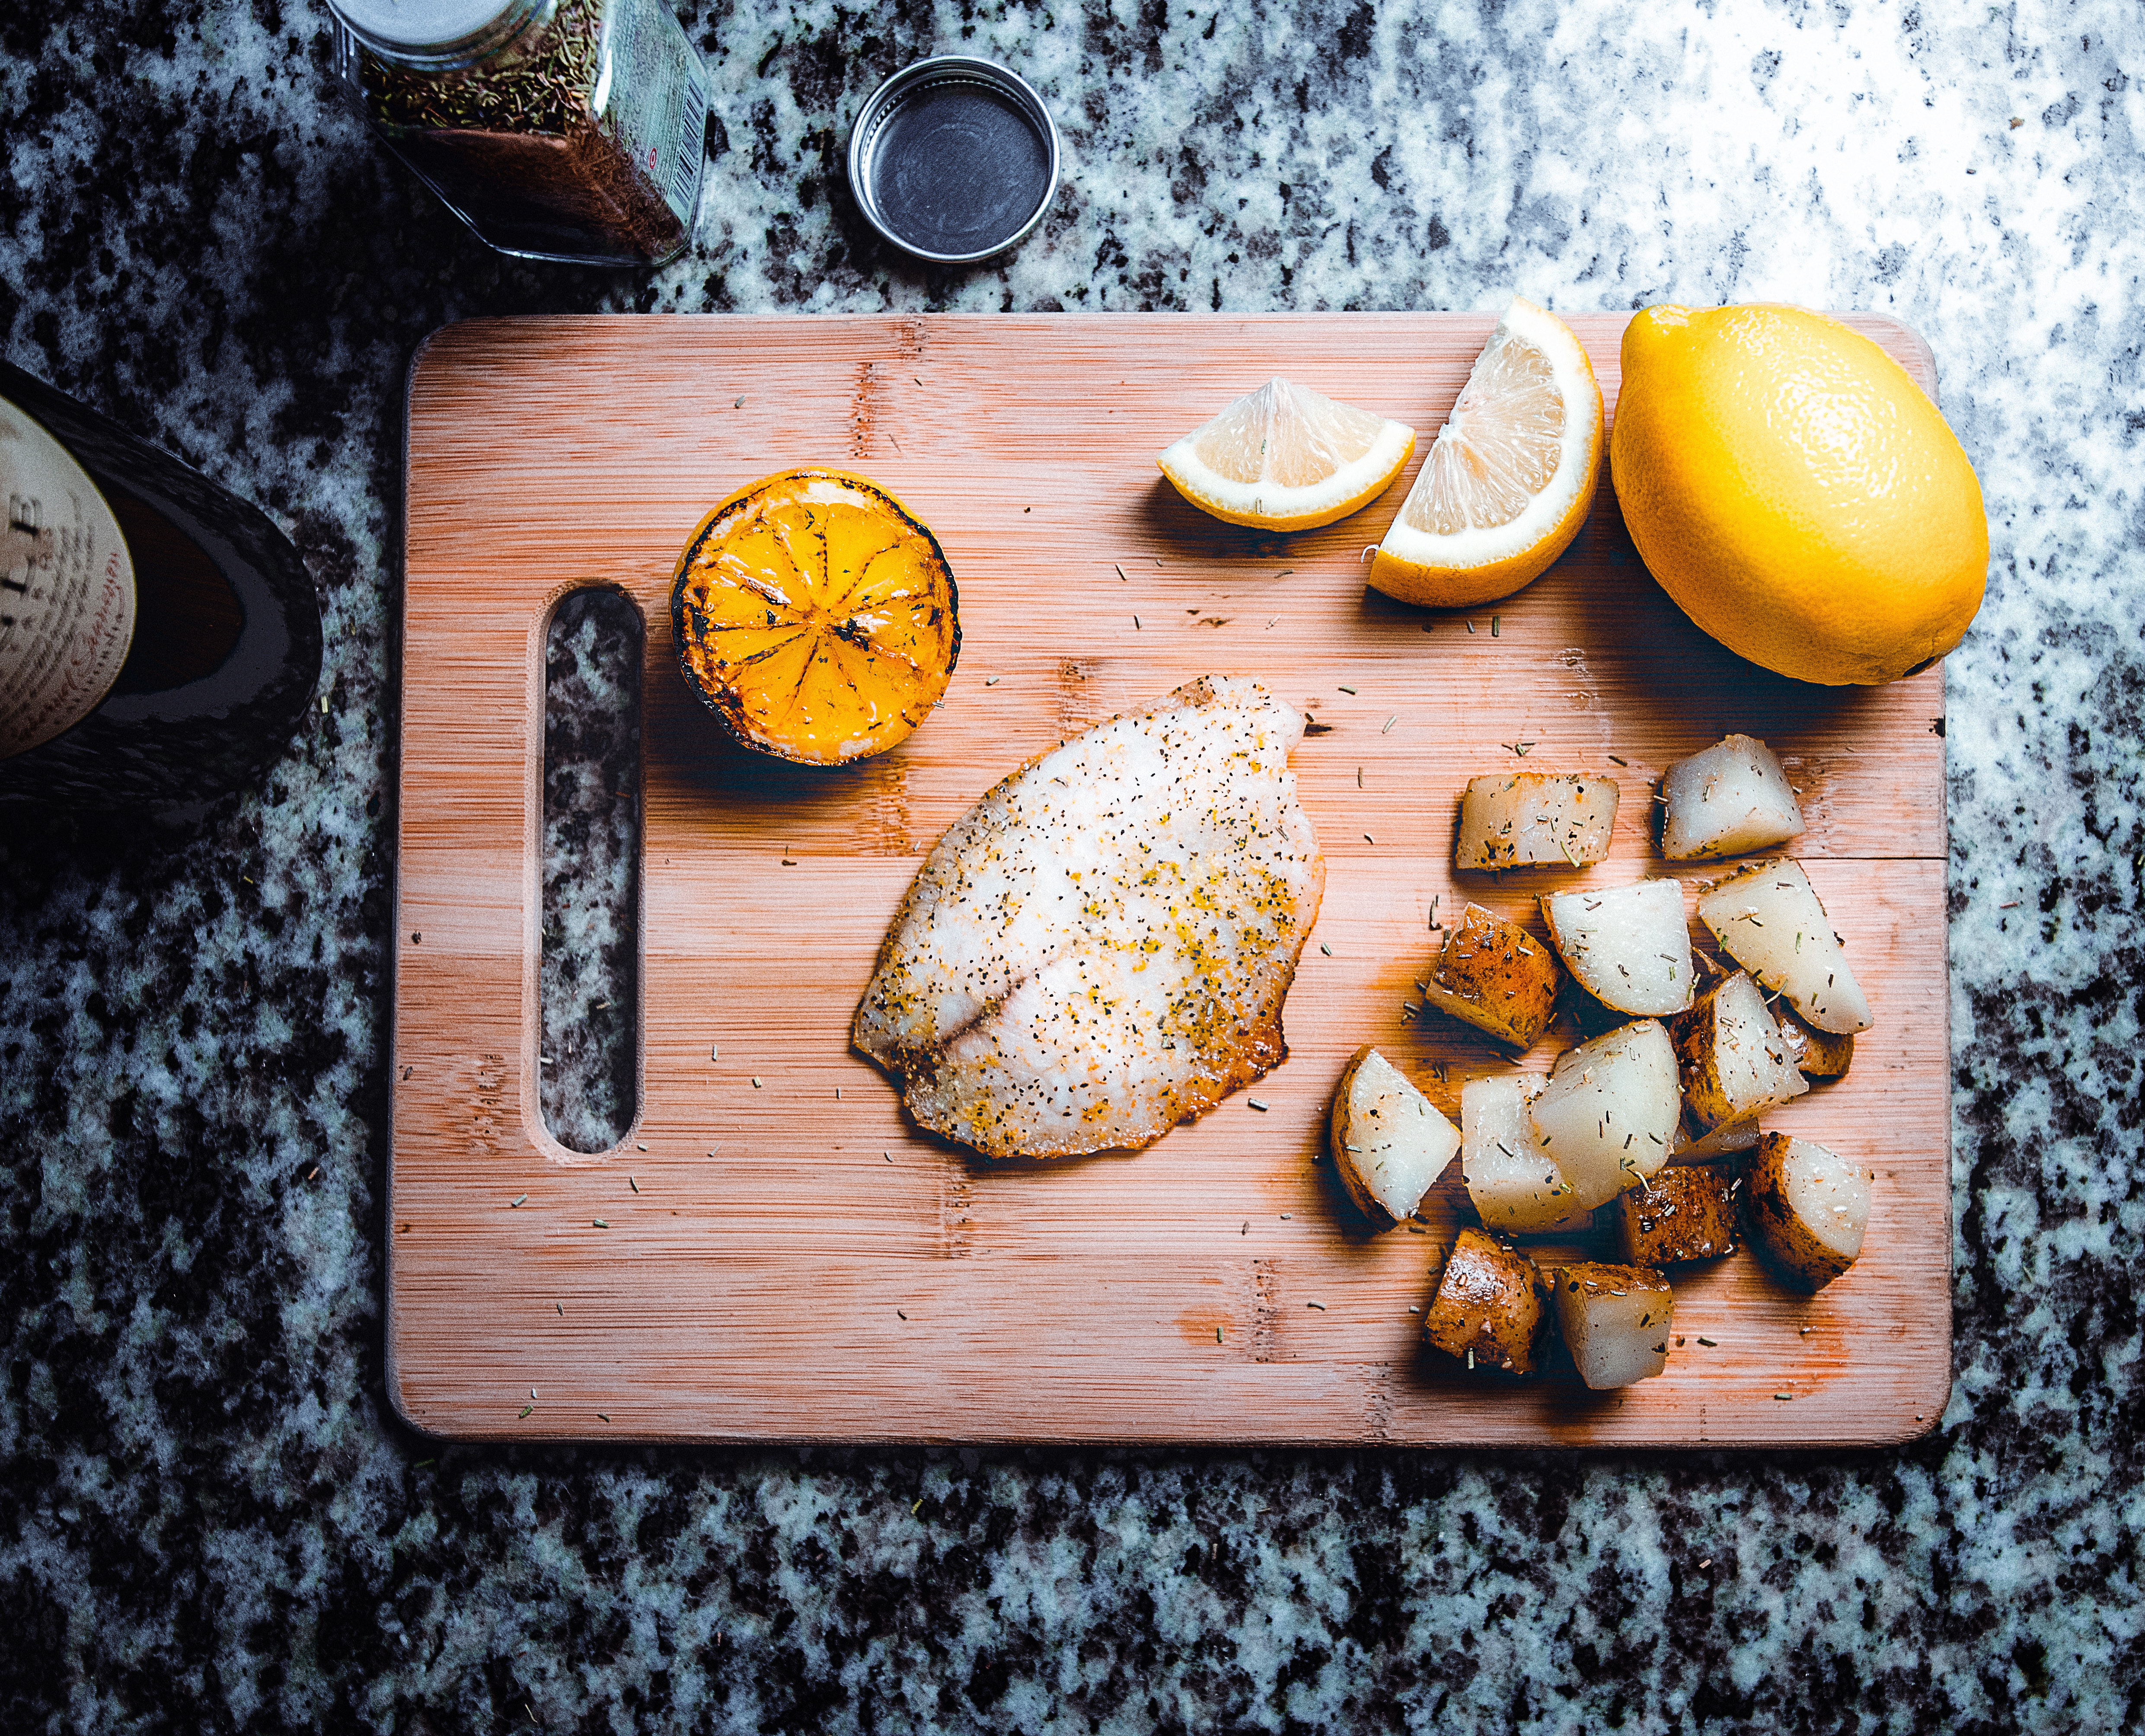 chopping-board-cooking-cuisine-delicious-428355